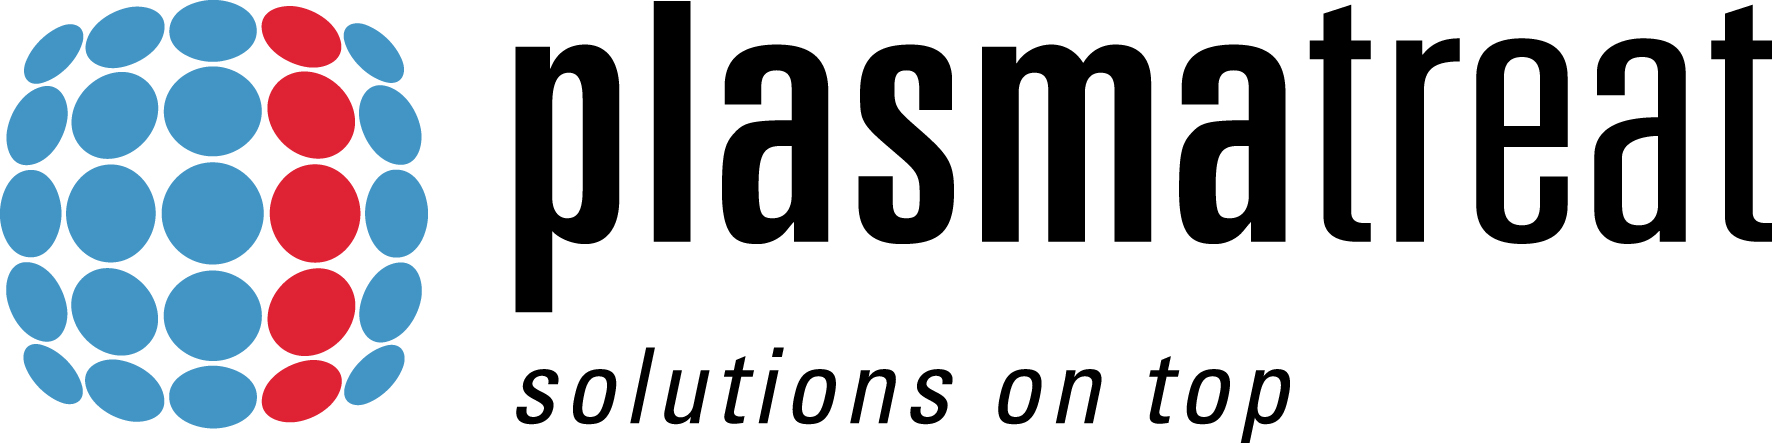 Plasmatreat North America Inc.